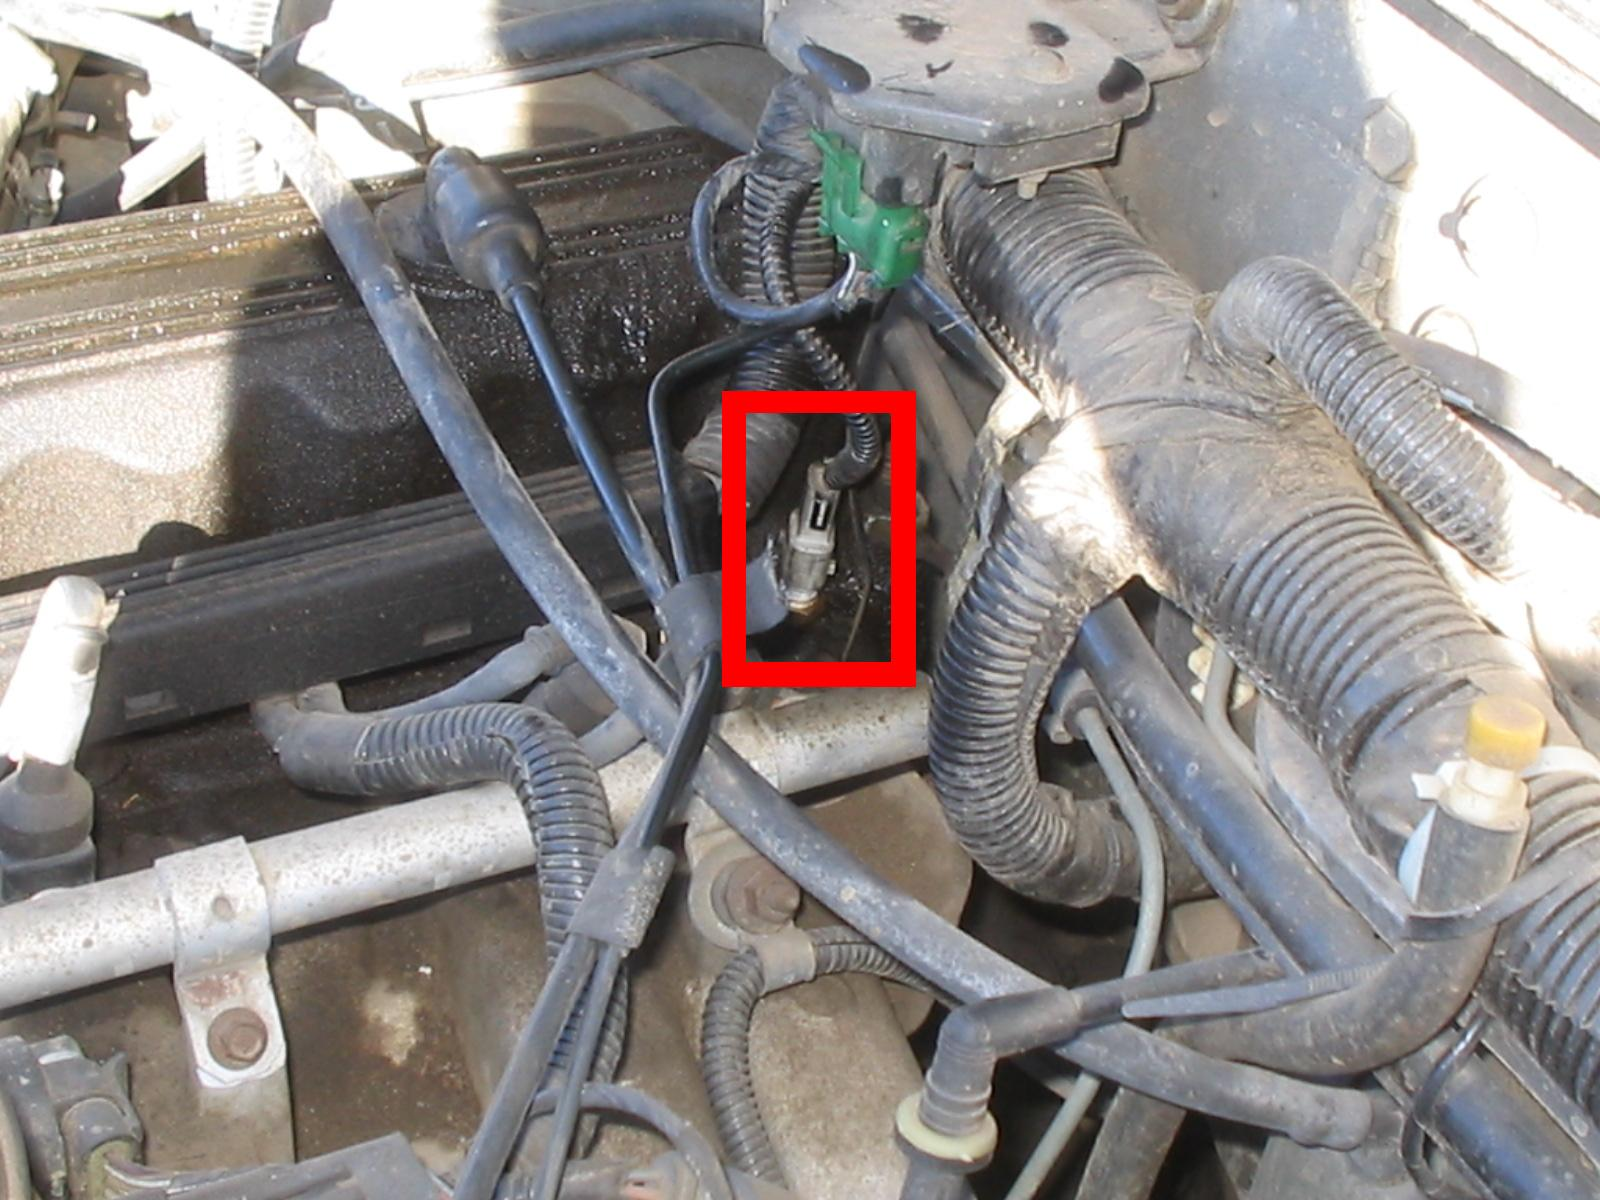 Chevy Fuel Sending Unit Wiring Diagram further Help Me Id These Pics Inside 128911 together with Leaking Oil Out Oil Sending Unit 2493125 besides Gm Wiring Alternator further Oil Pressure Gauge Hook Up Help 498394. on oil sending unit wiring diagram